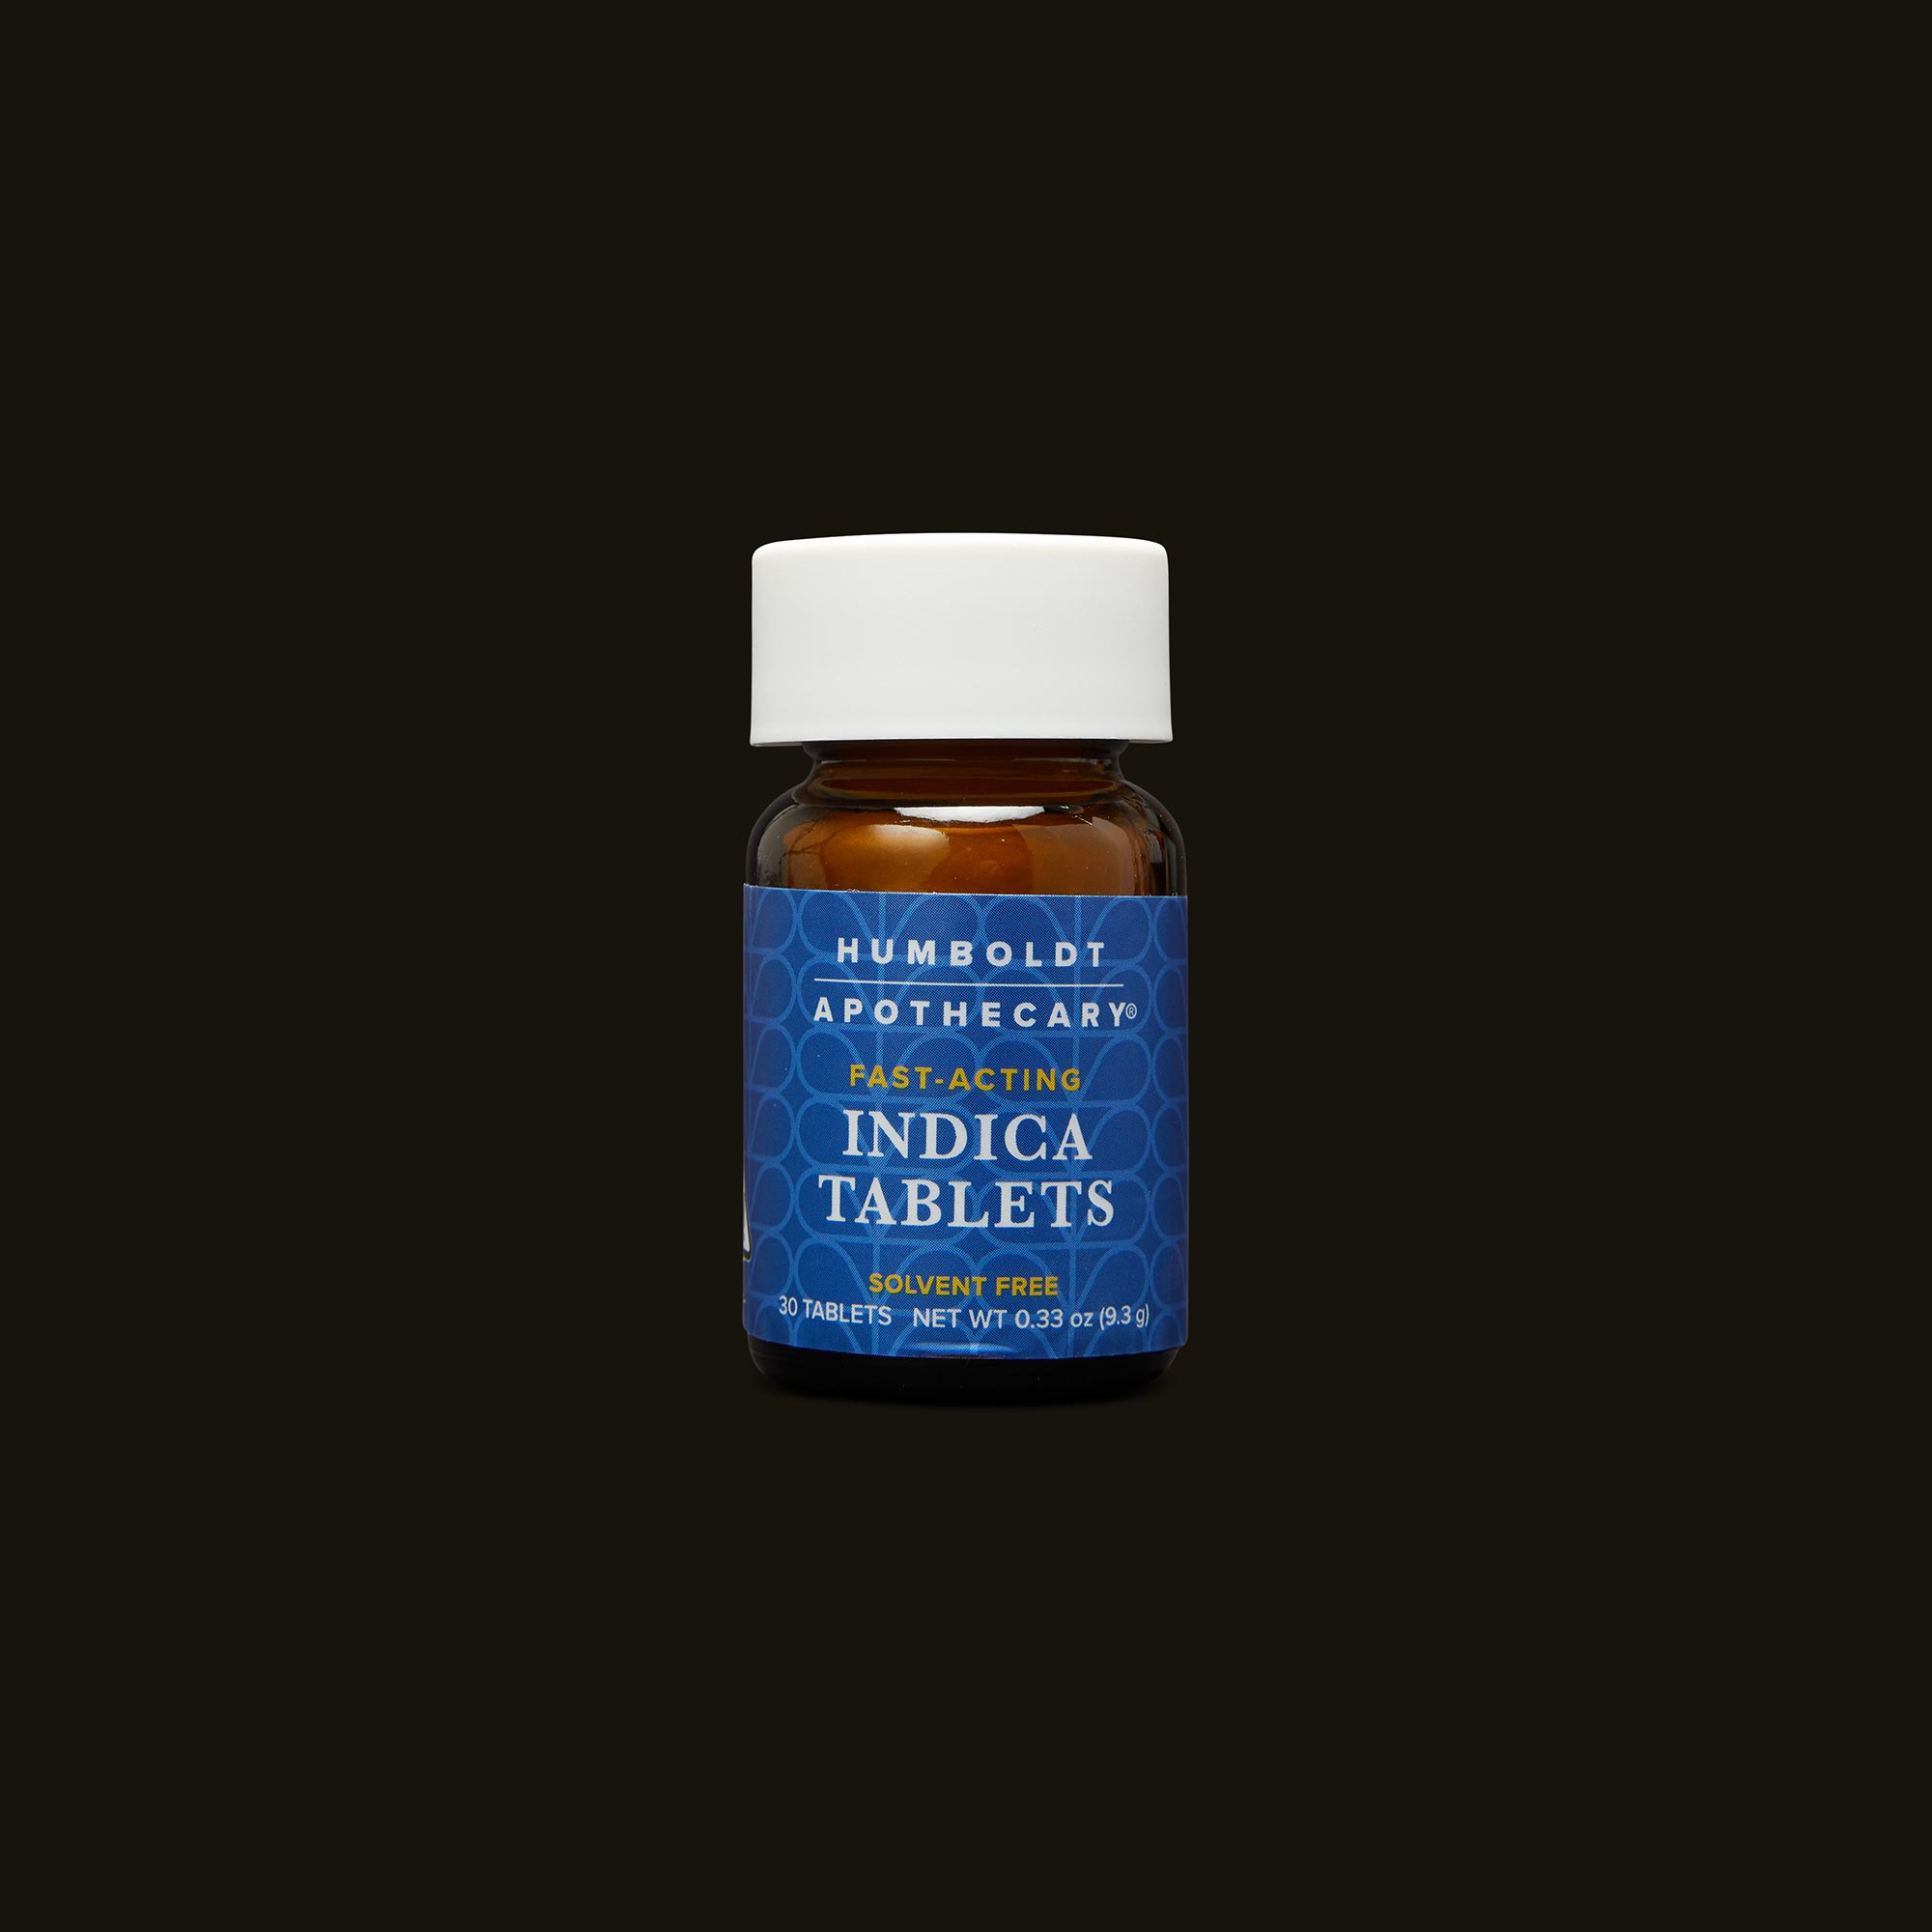 Humboldt Apothecary Indica Tablets Bottle